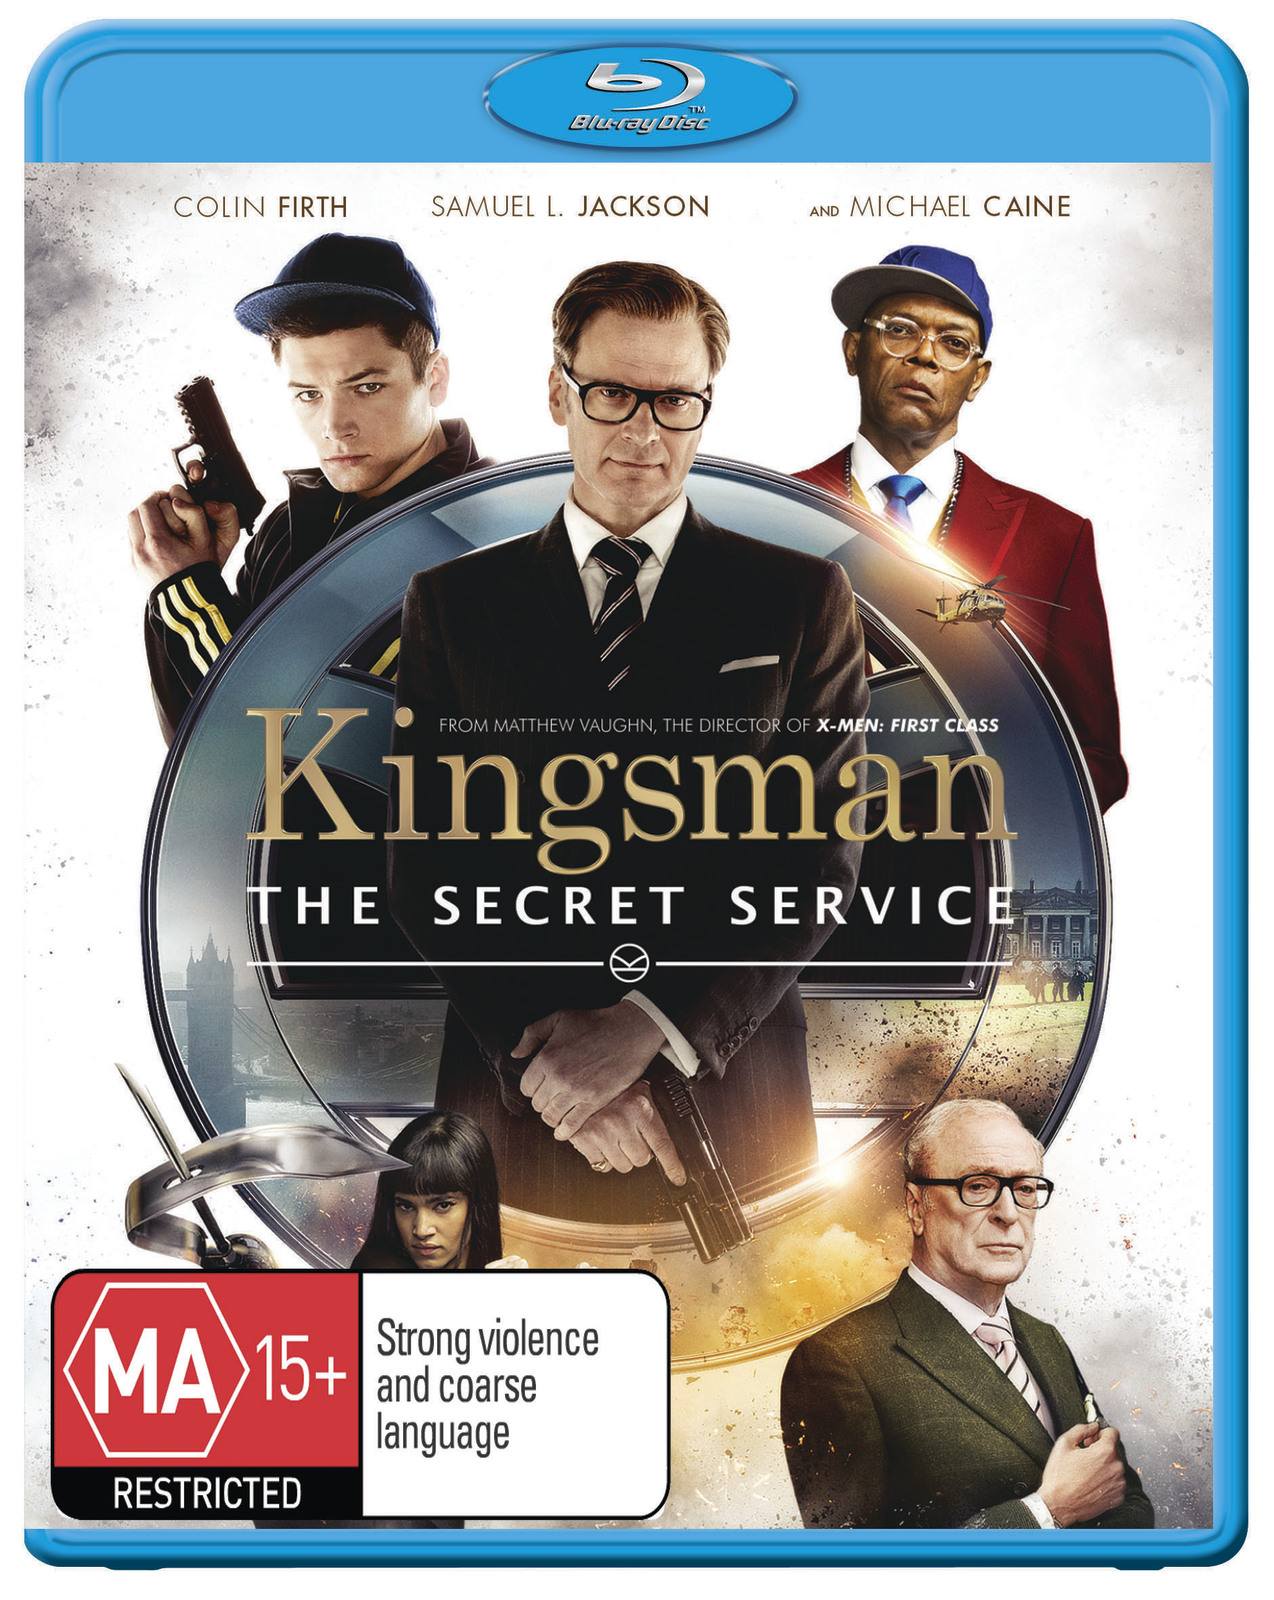 Kingsman: The Secret Service on Blu-ray image